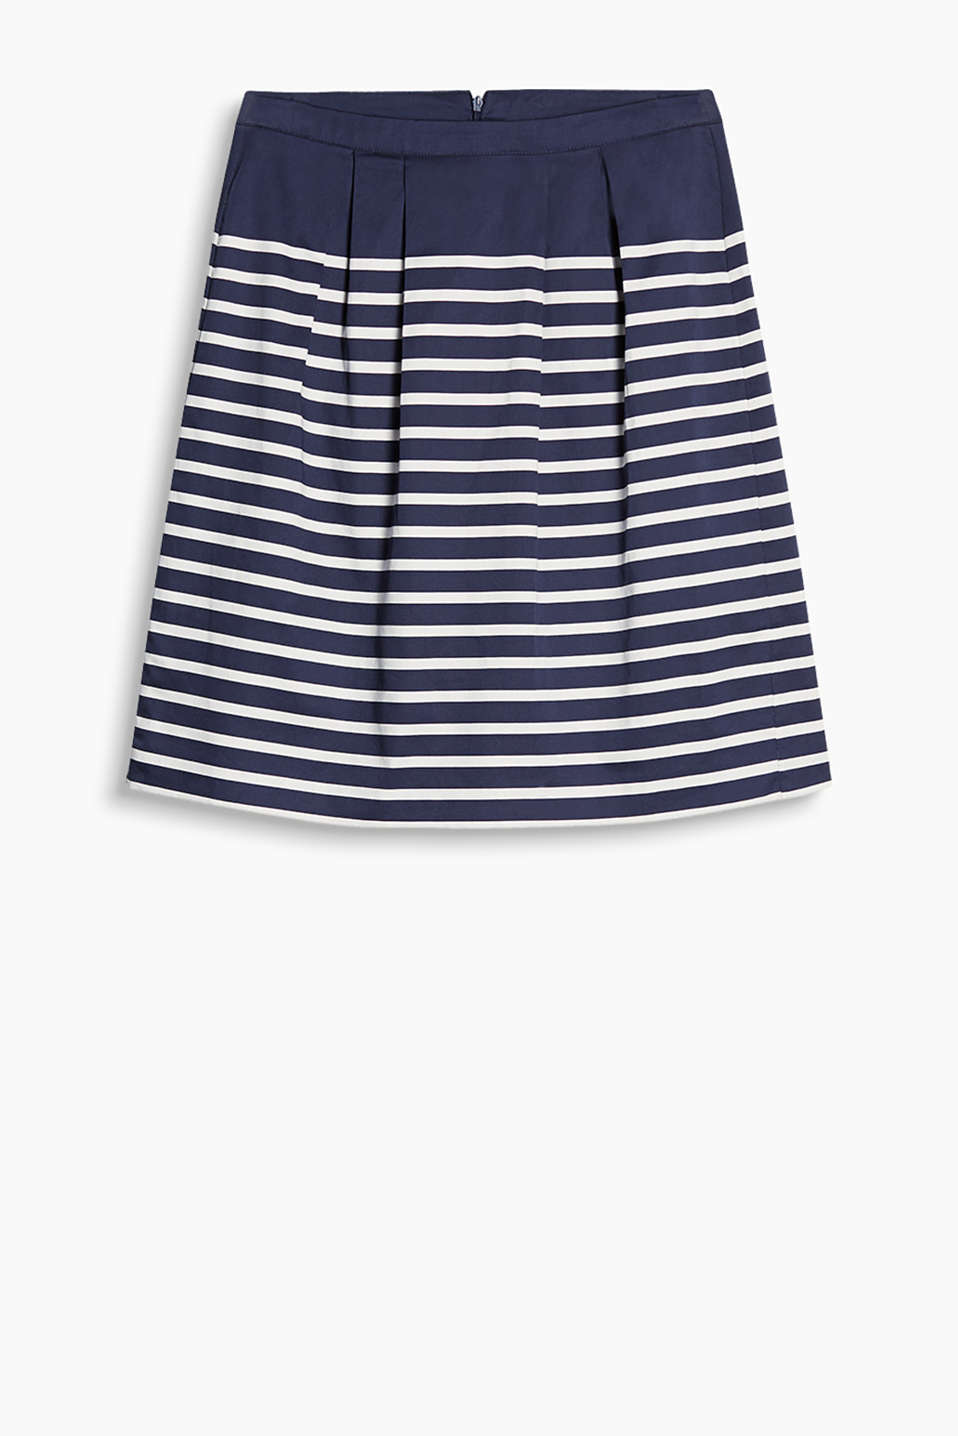 with an attached waistband, inset pleats and nautical stripes